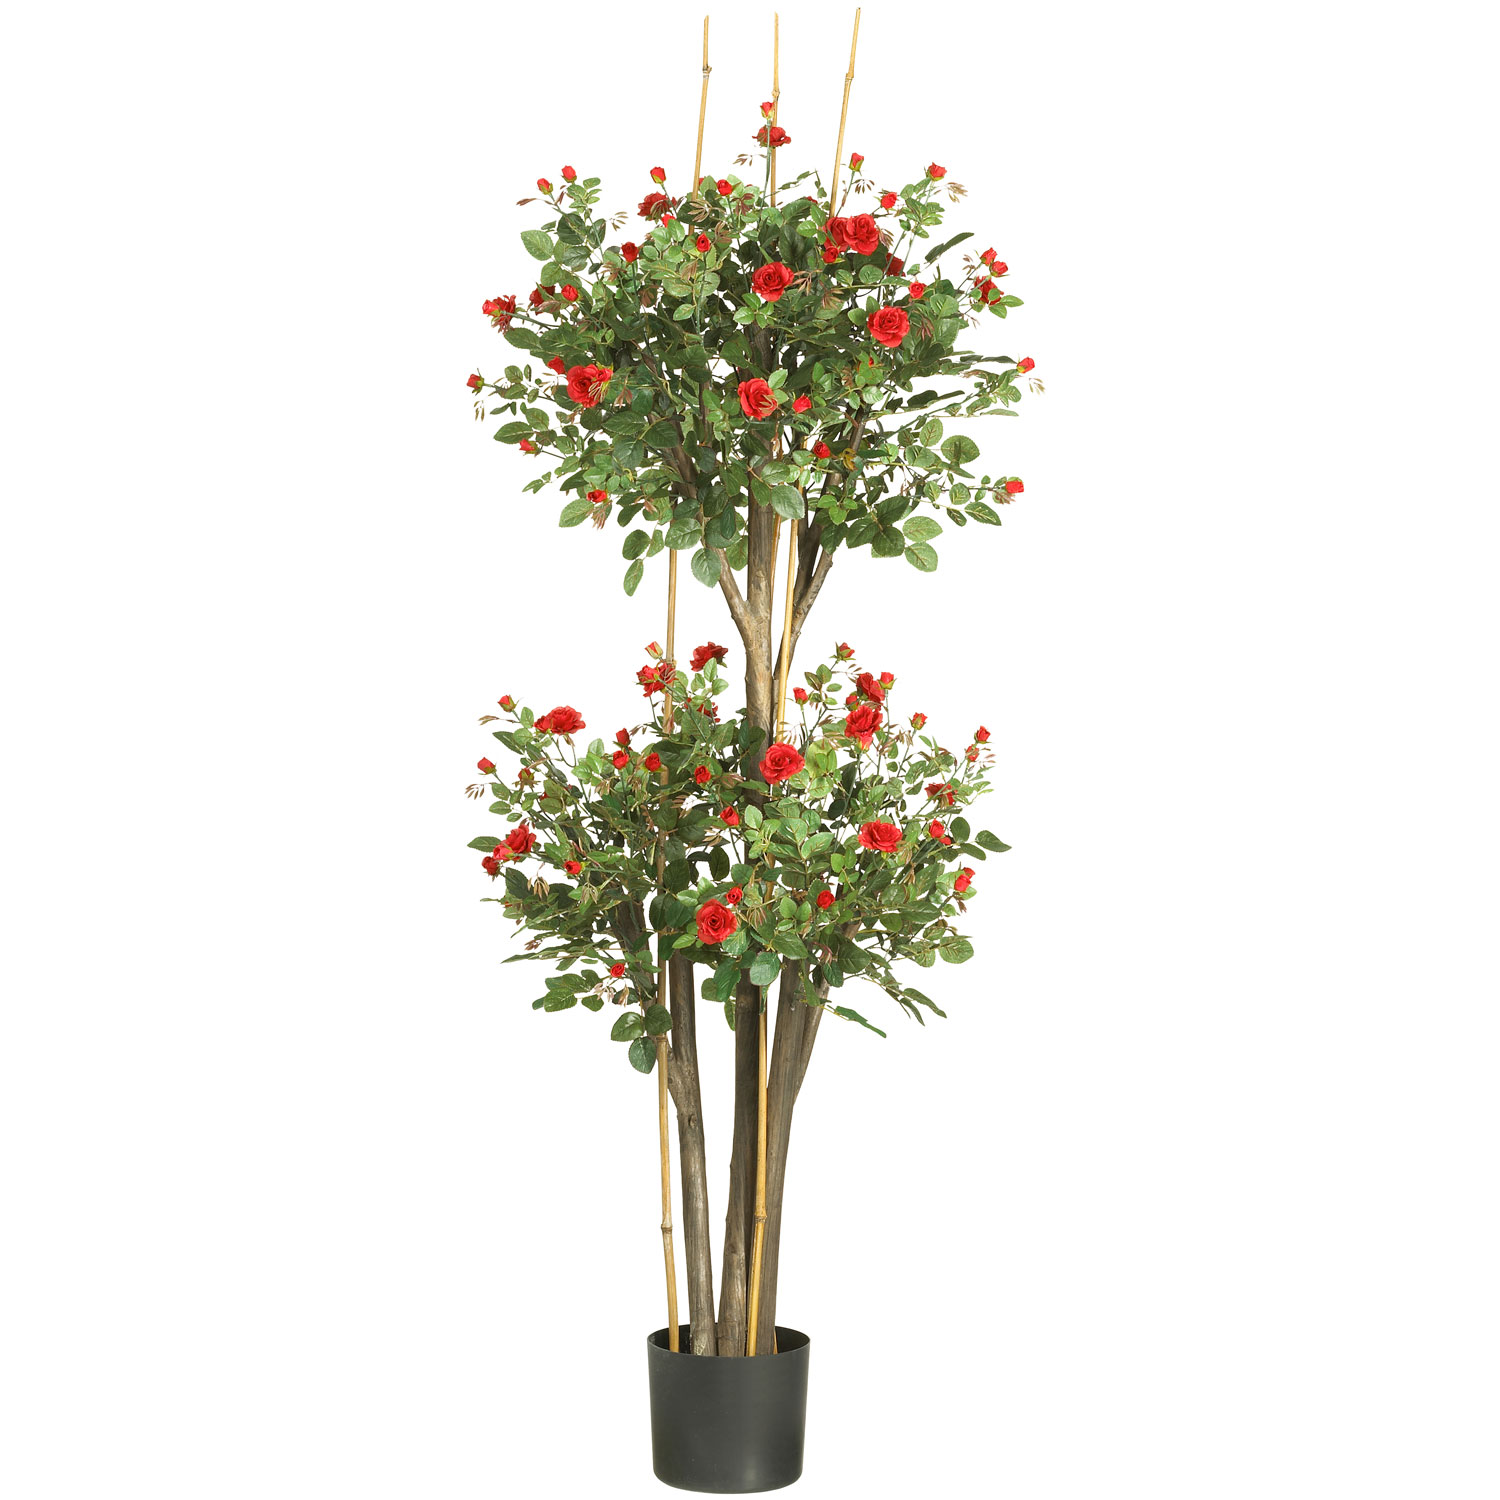 Artificial cherry blossom tree fake cherry blossom tree 5 foot mini rose tree potted dhlflorist Gallery